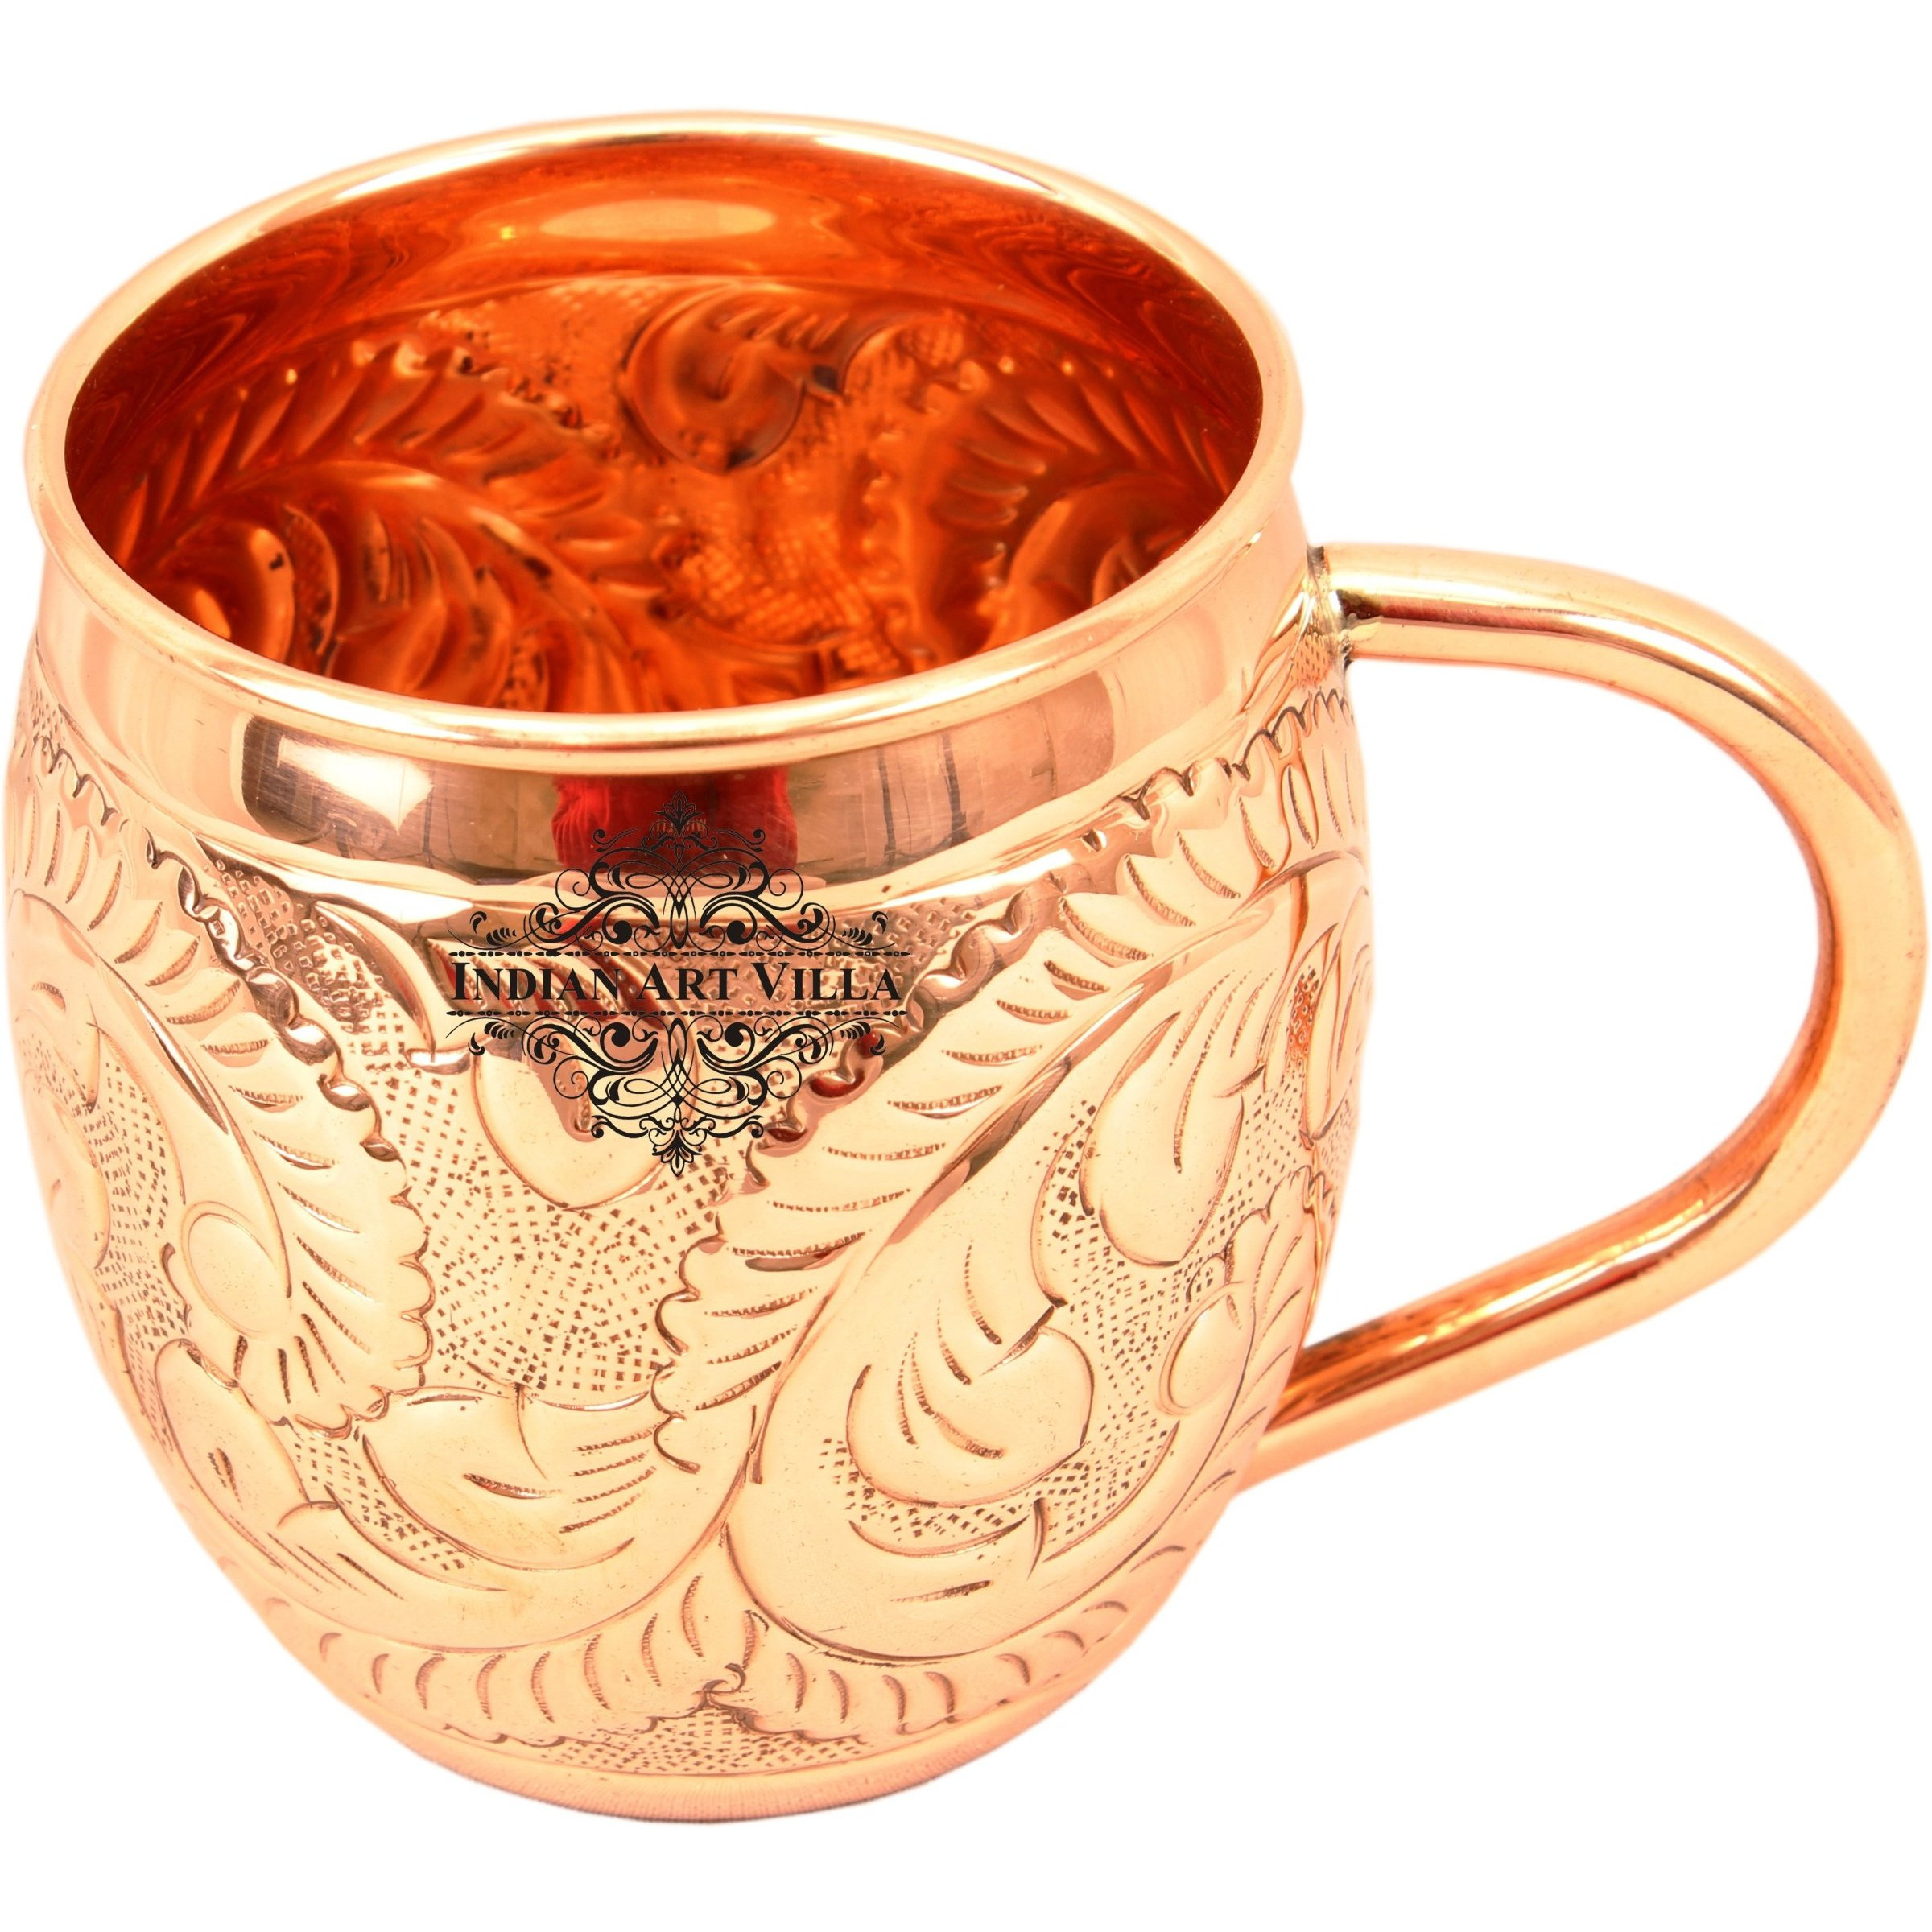 Indian Art Villa Copper Round Flower Design Mug 15 Oz